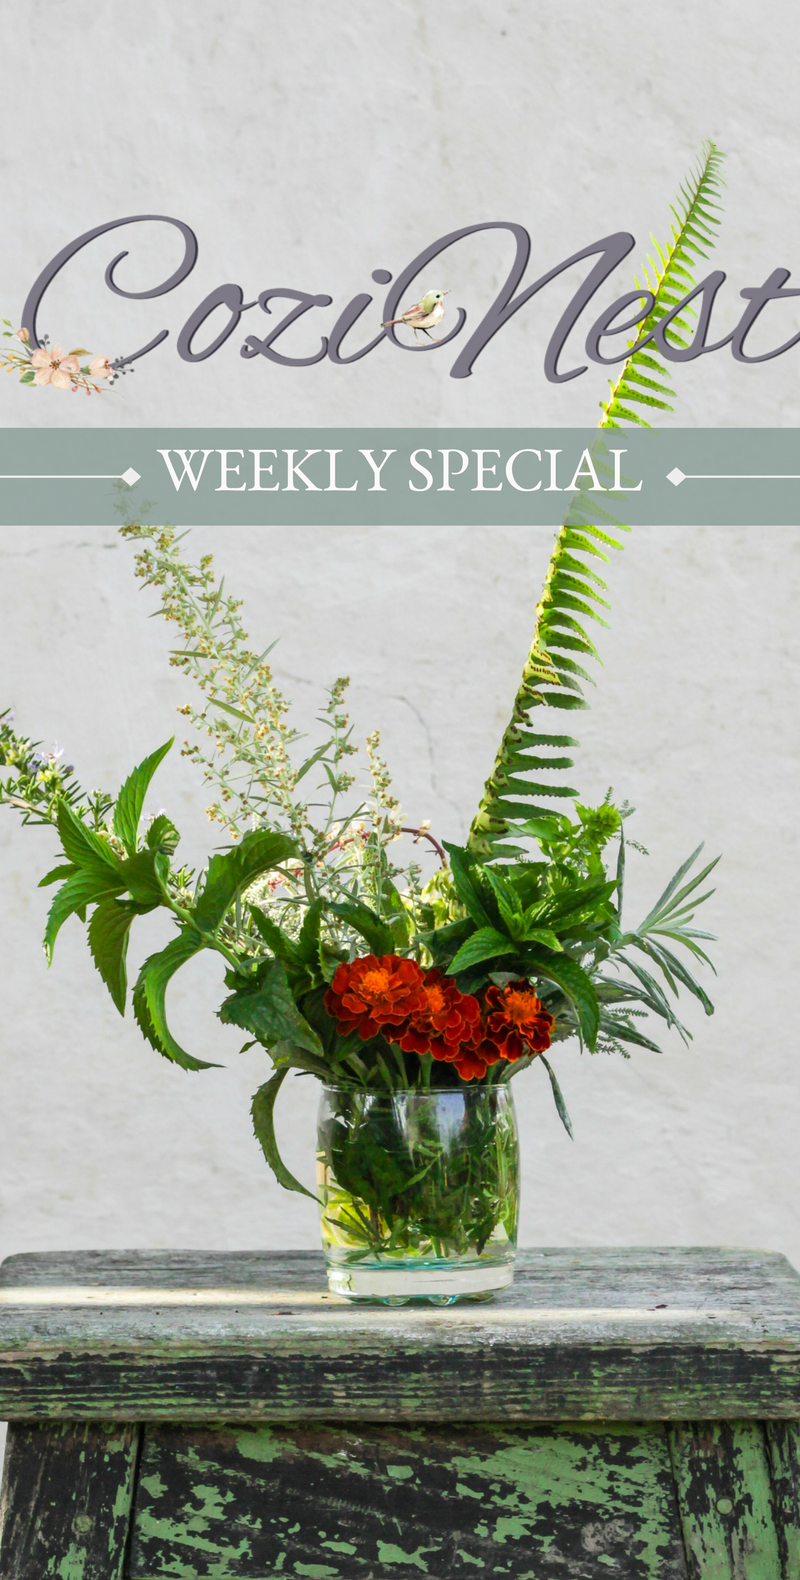 Weekly Special for 2/12/18